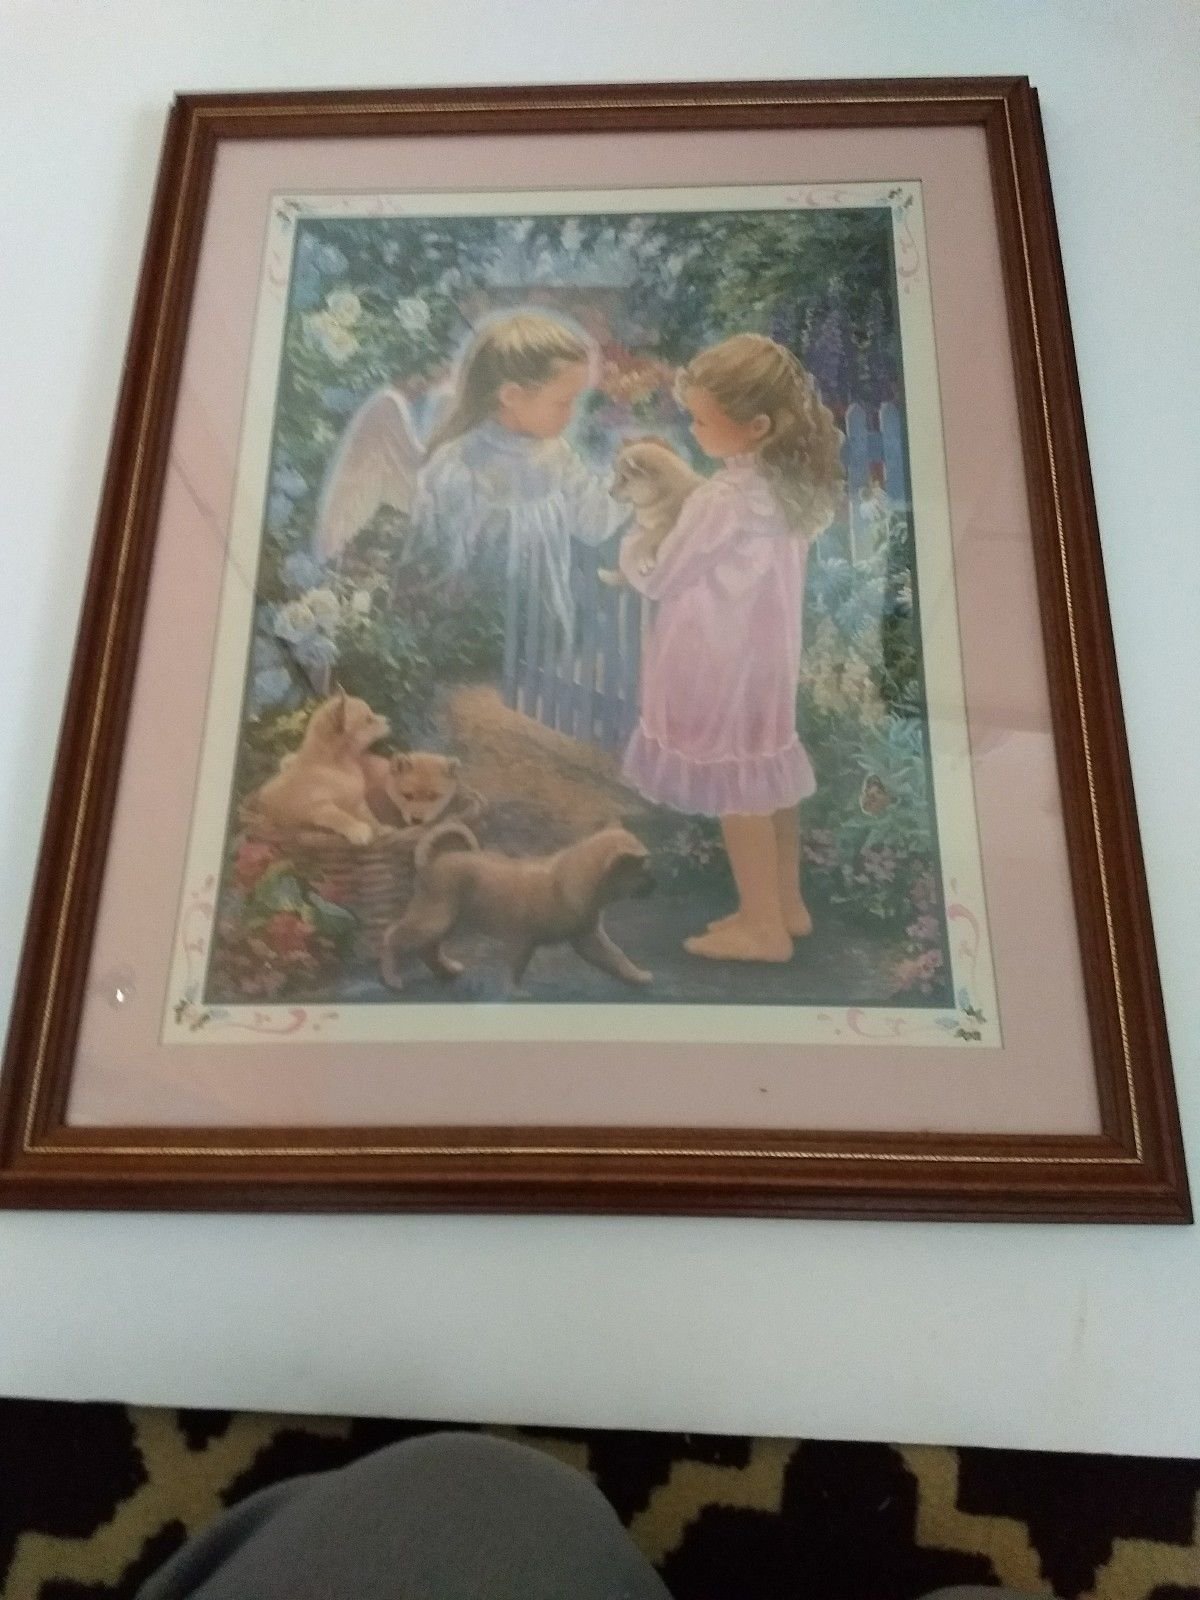 Home Interiors Holding Puppy Angel Puppies 22x19 Mint Vtg Discontinued